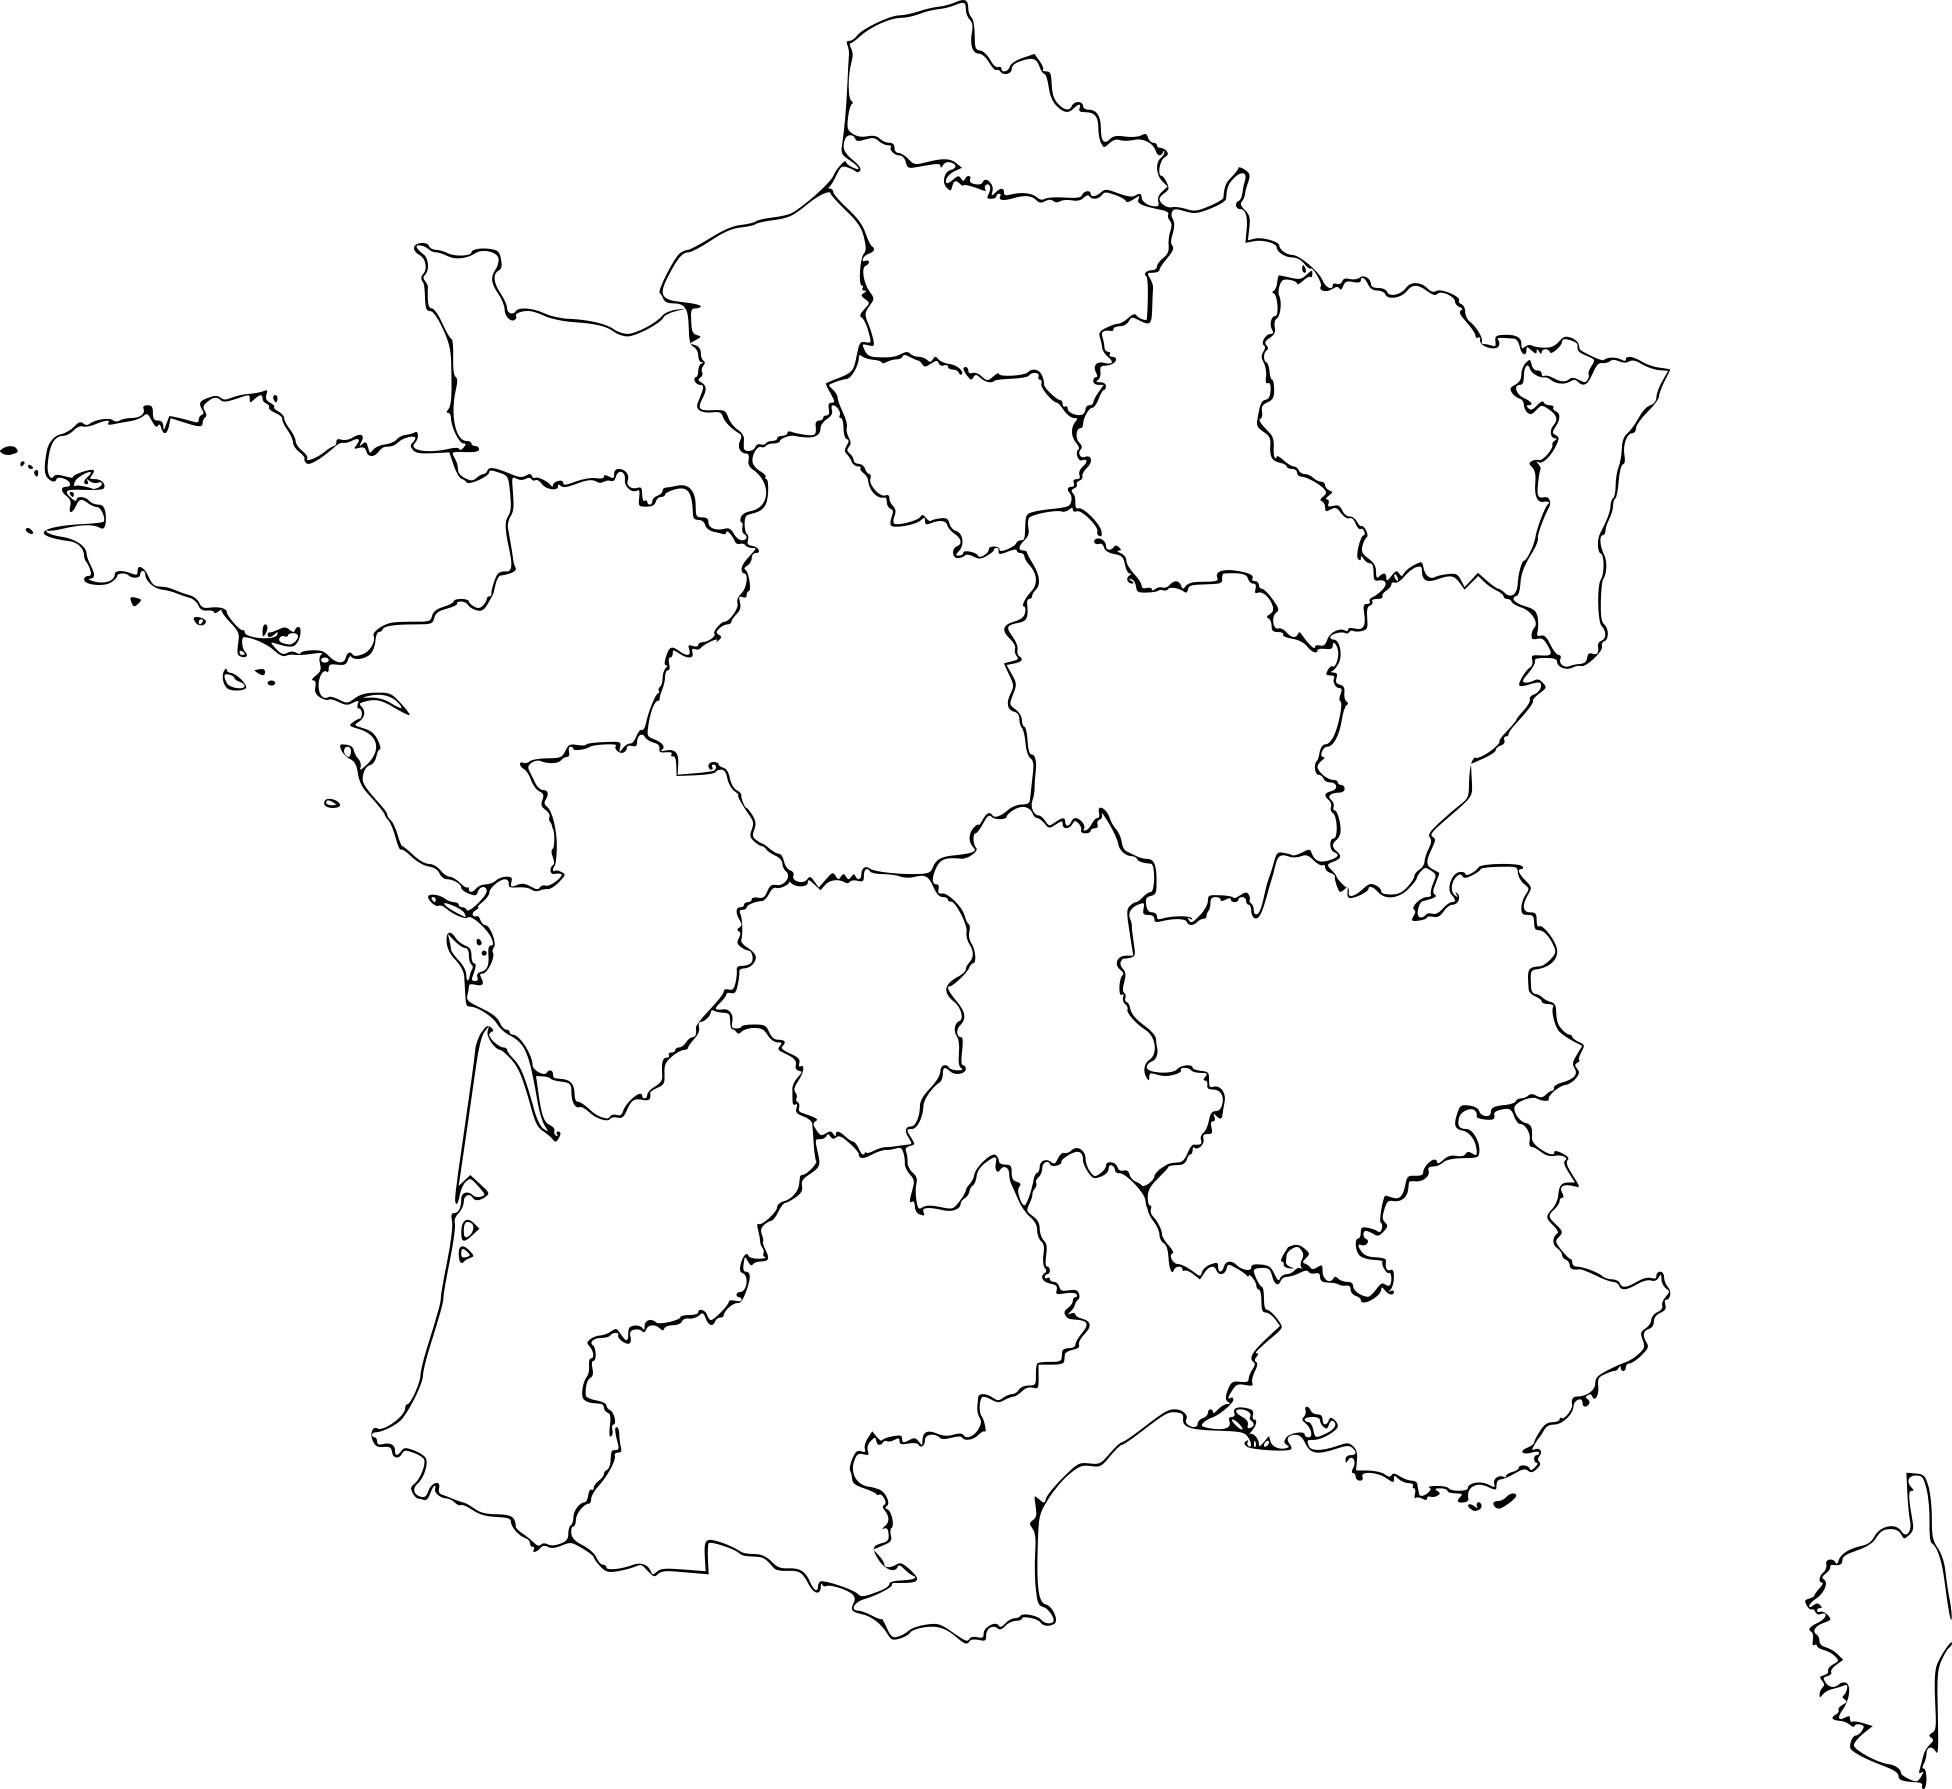 Coloriage Carte De La France À Imprimer Sur Coloriages destiné Carte De France Imprimable